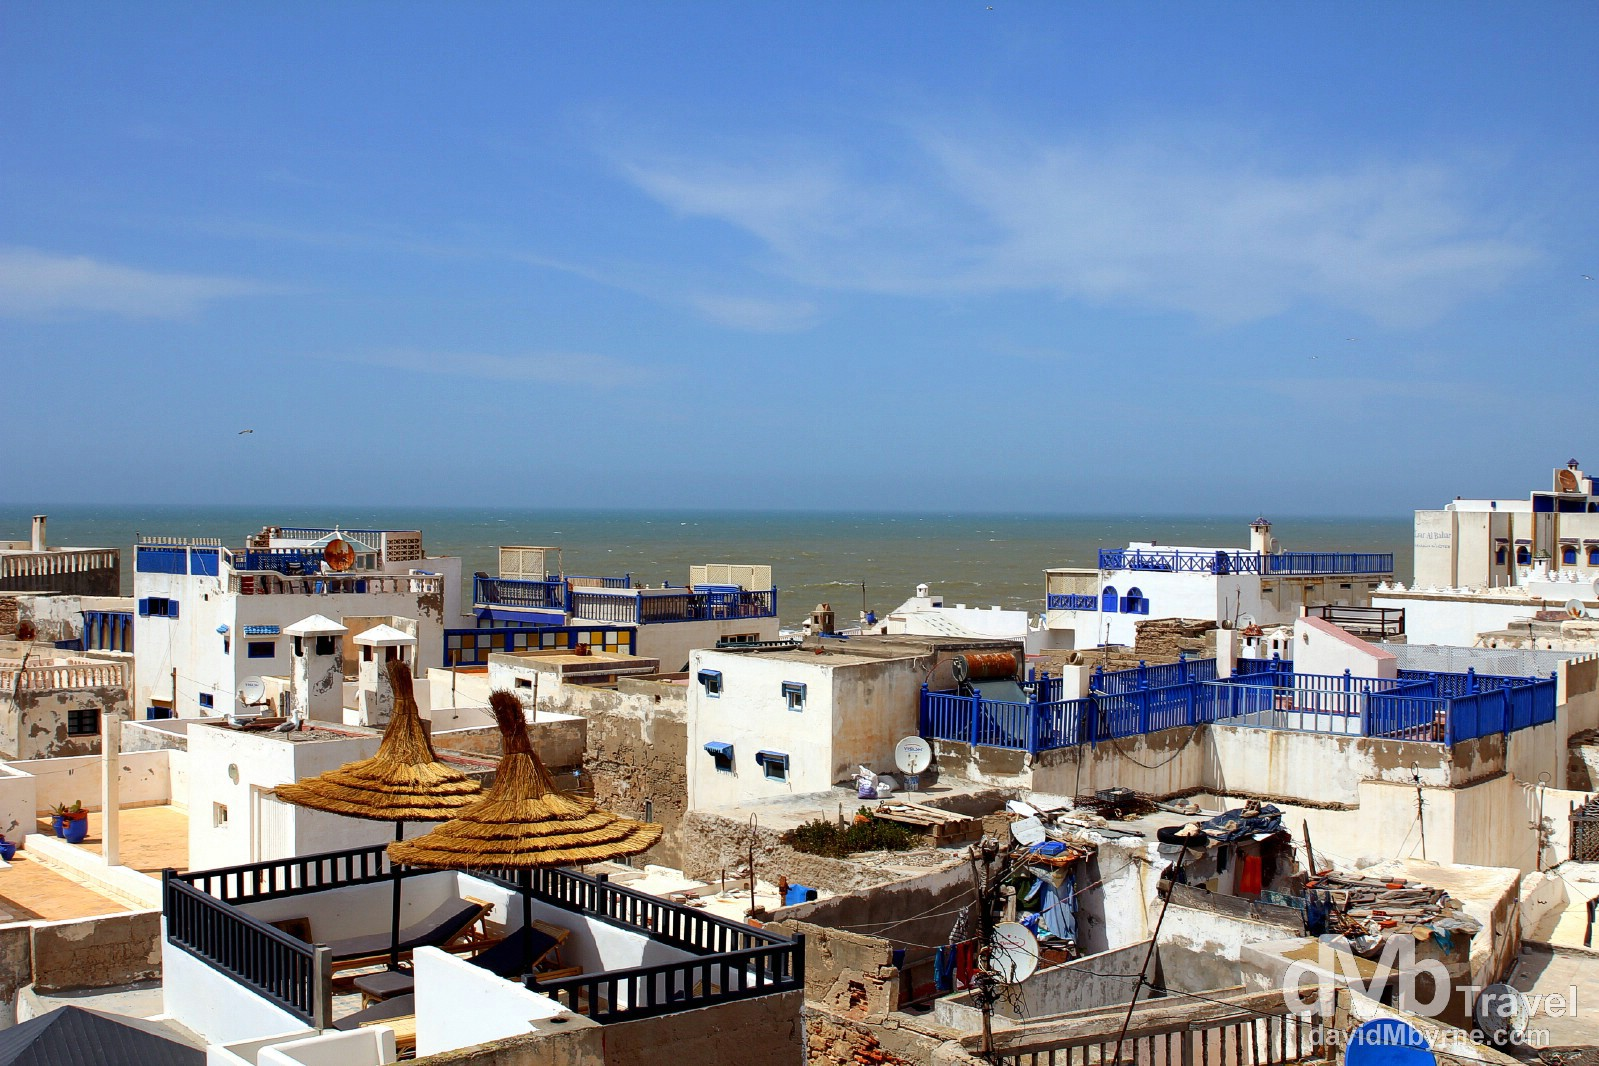 Rooftops of the median and the Atlantic Ocean as seen from the terrace of Raid El Pacha, Essaouira, Morocco. May 2nd, 2014.